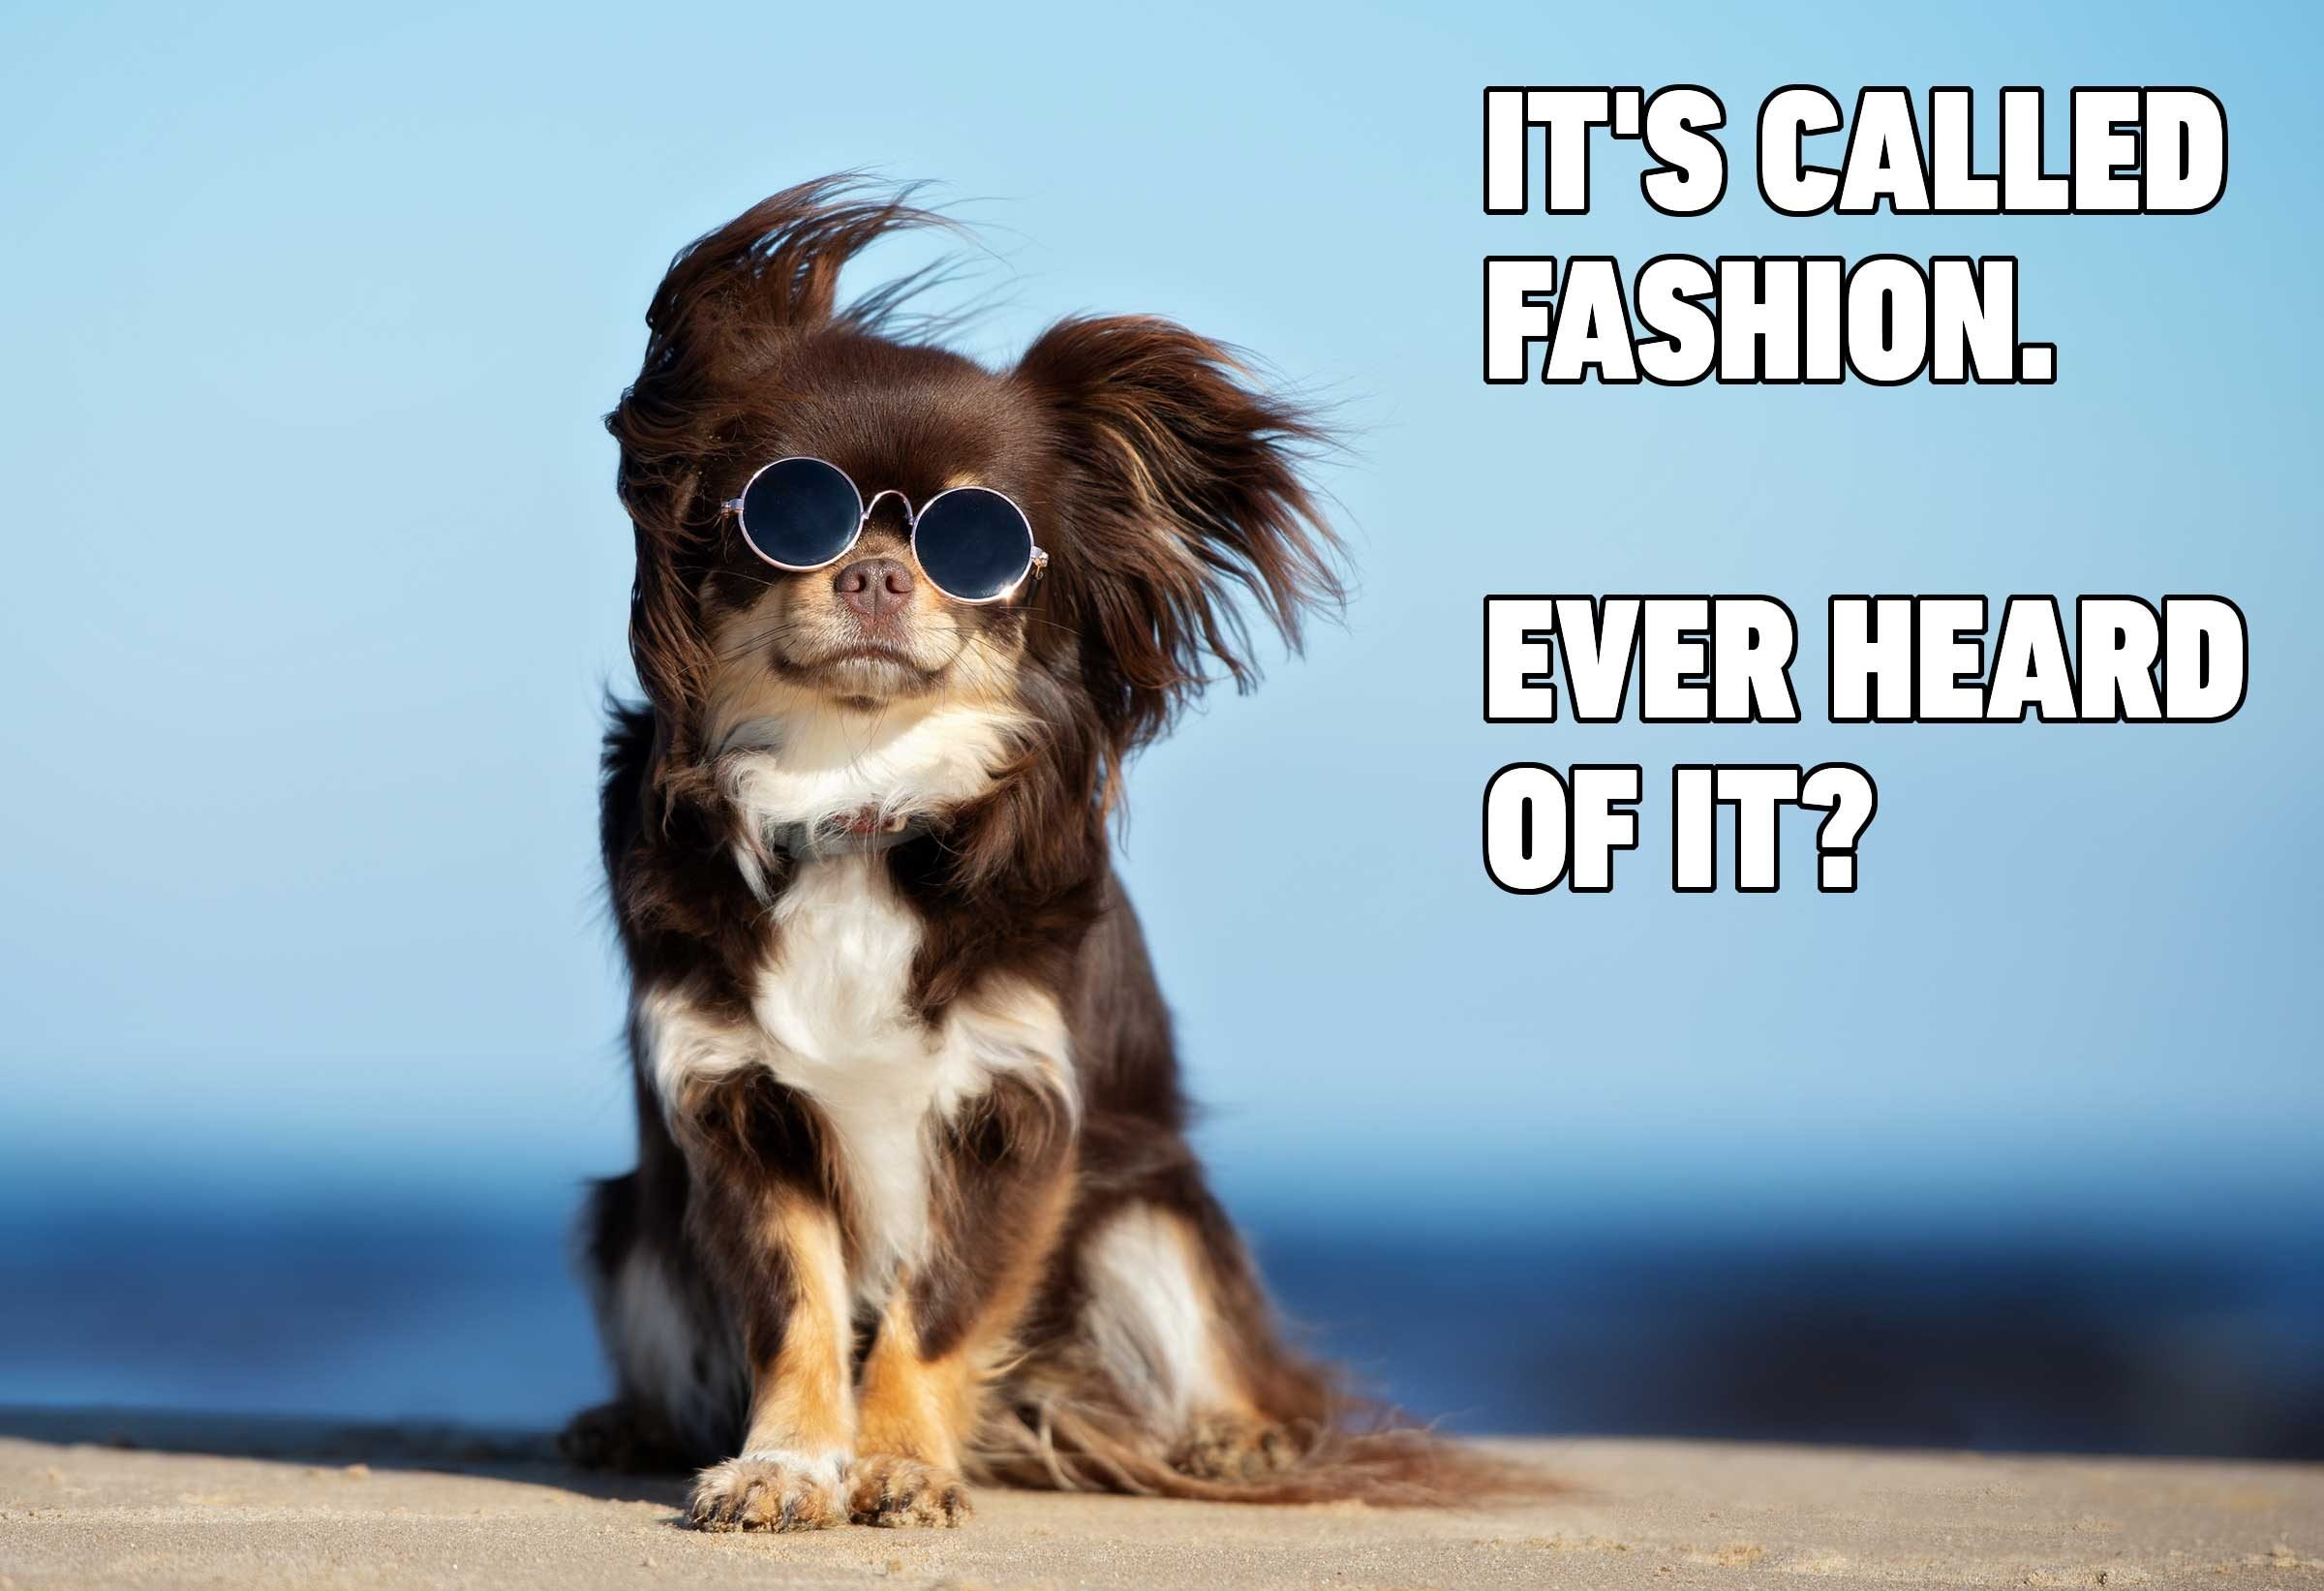 Hilarious Dog Memes You'll Laugh at Every Time | Reader's ...